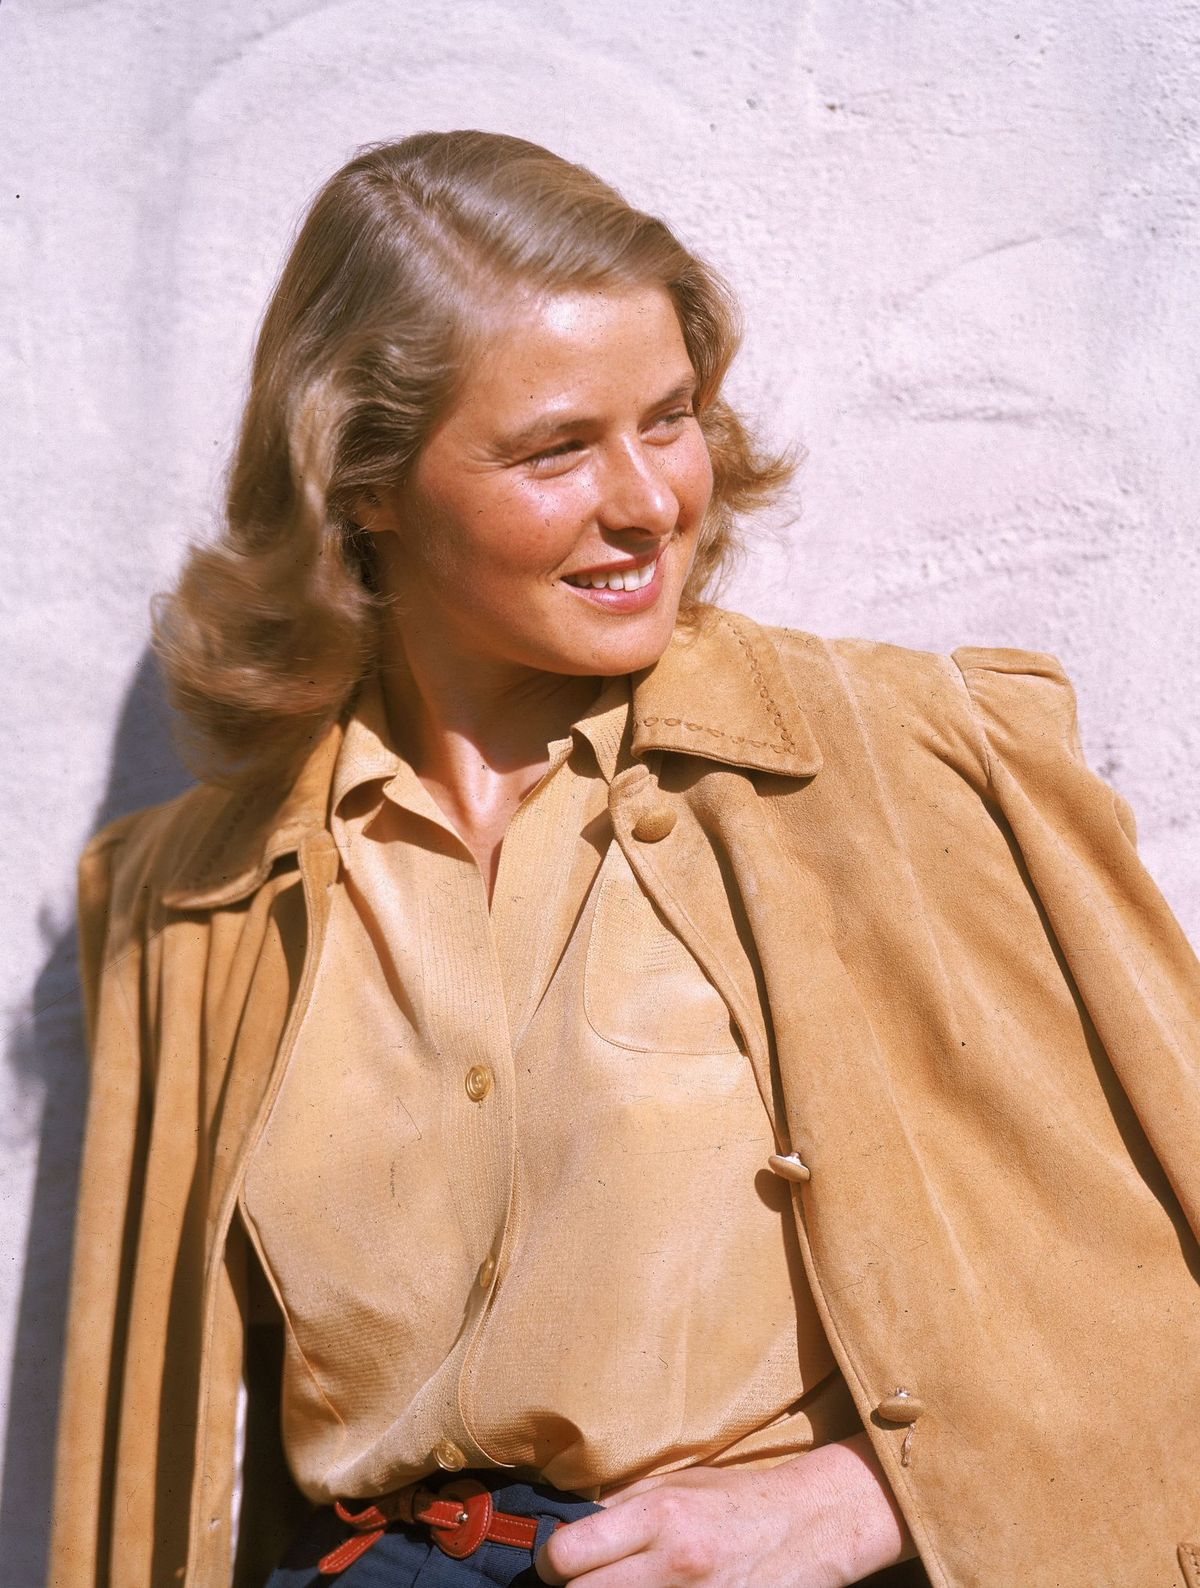 Ingrid Bergman smiles as she poses outdoors, wearing a tan leather jacket, on January 1, 1945. | Photo: Getty Images